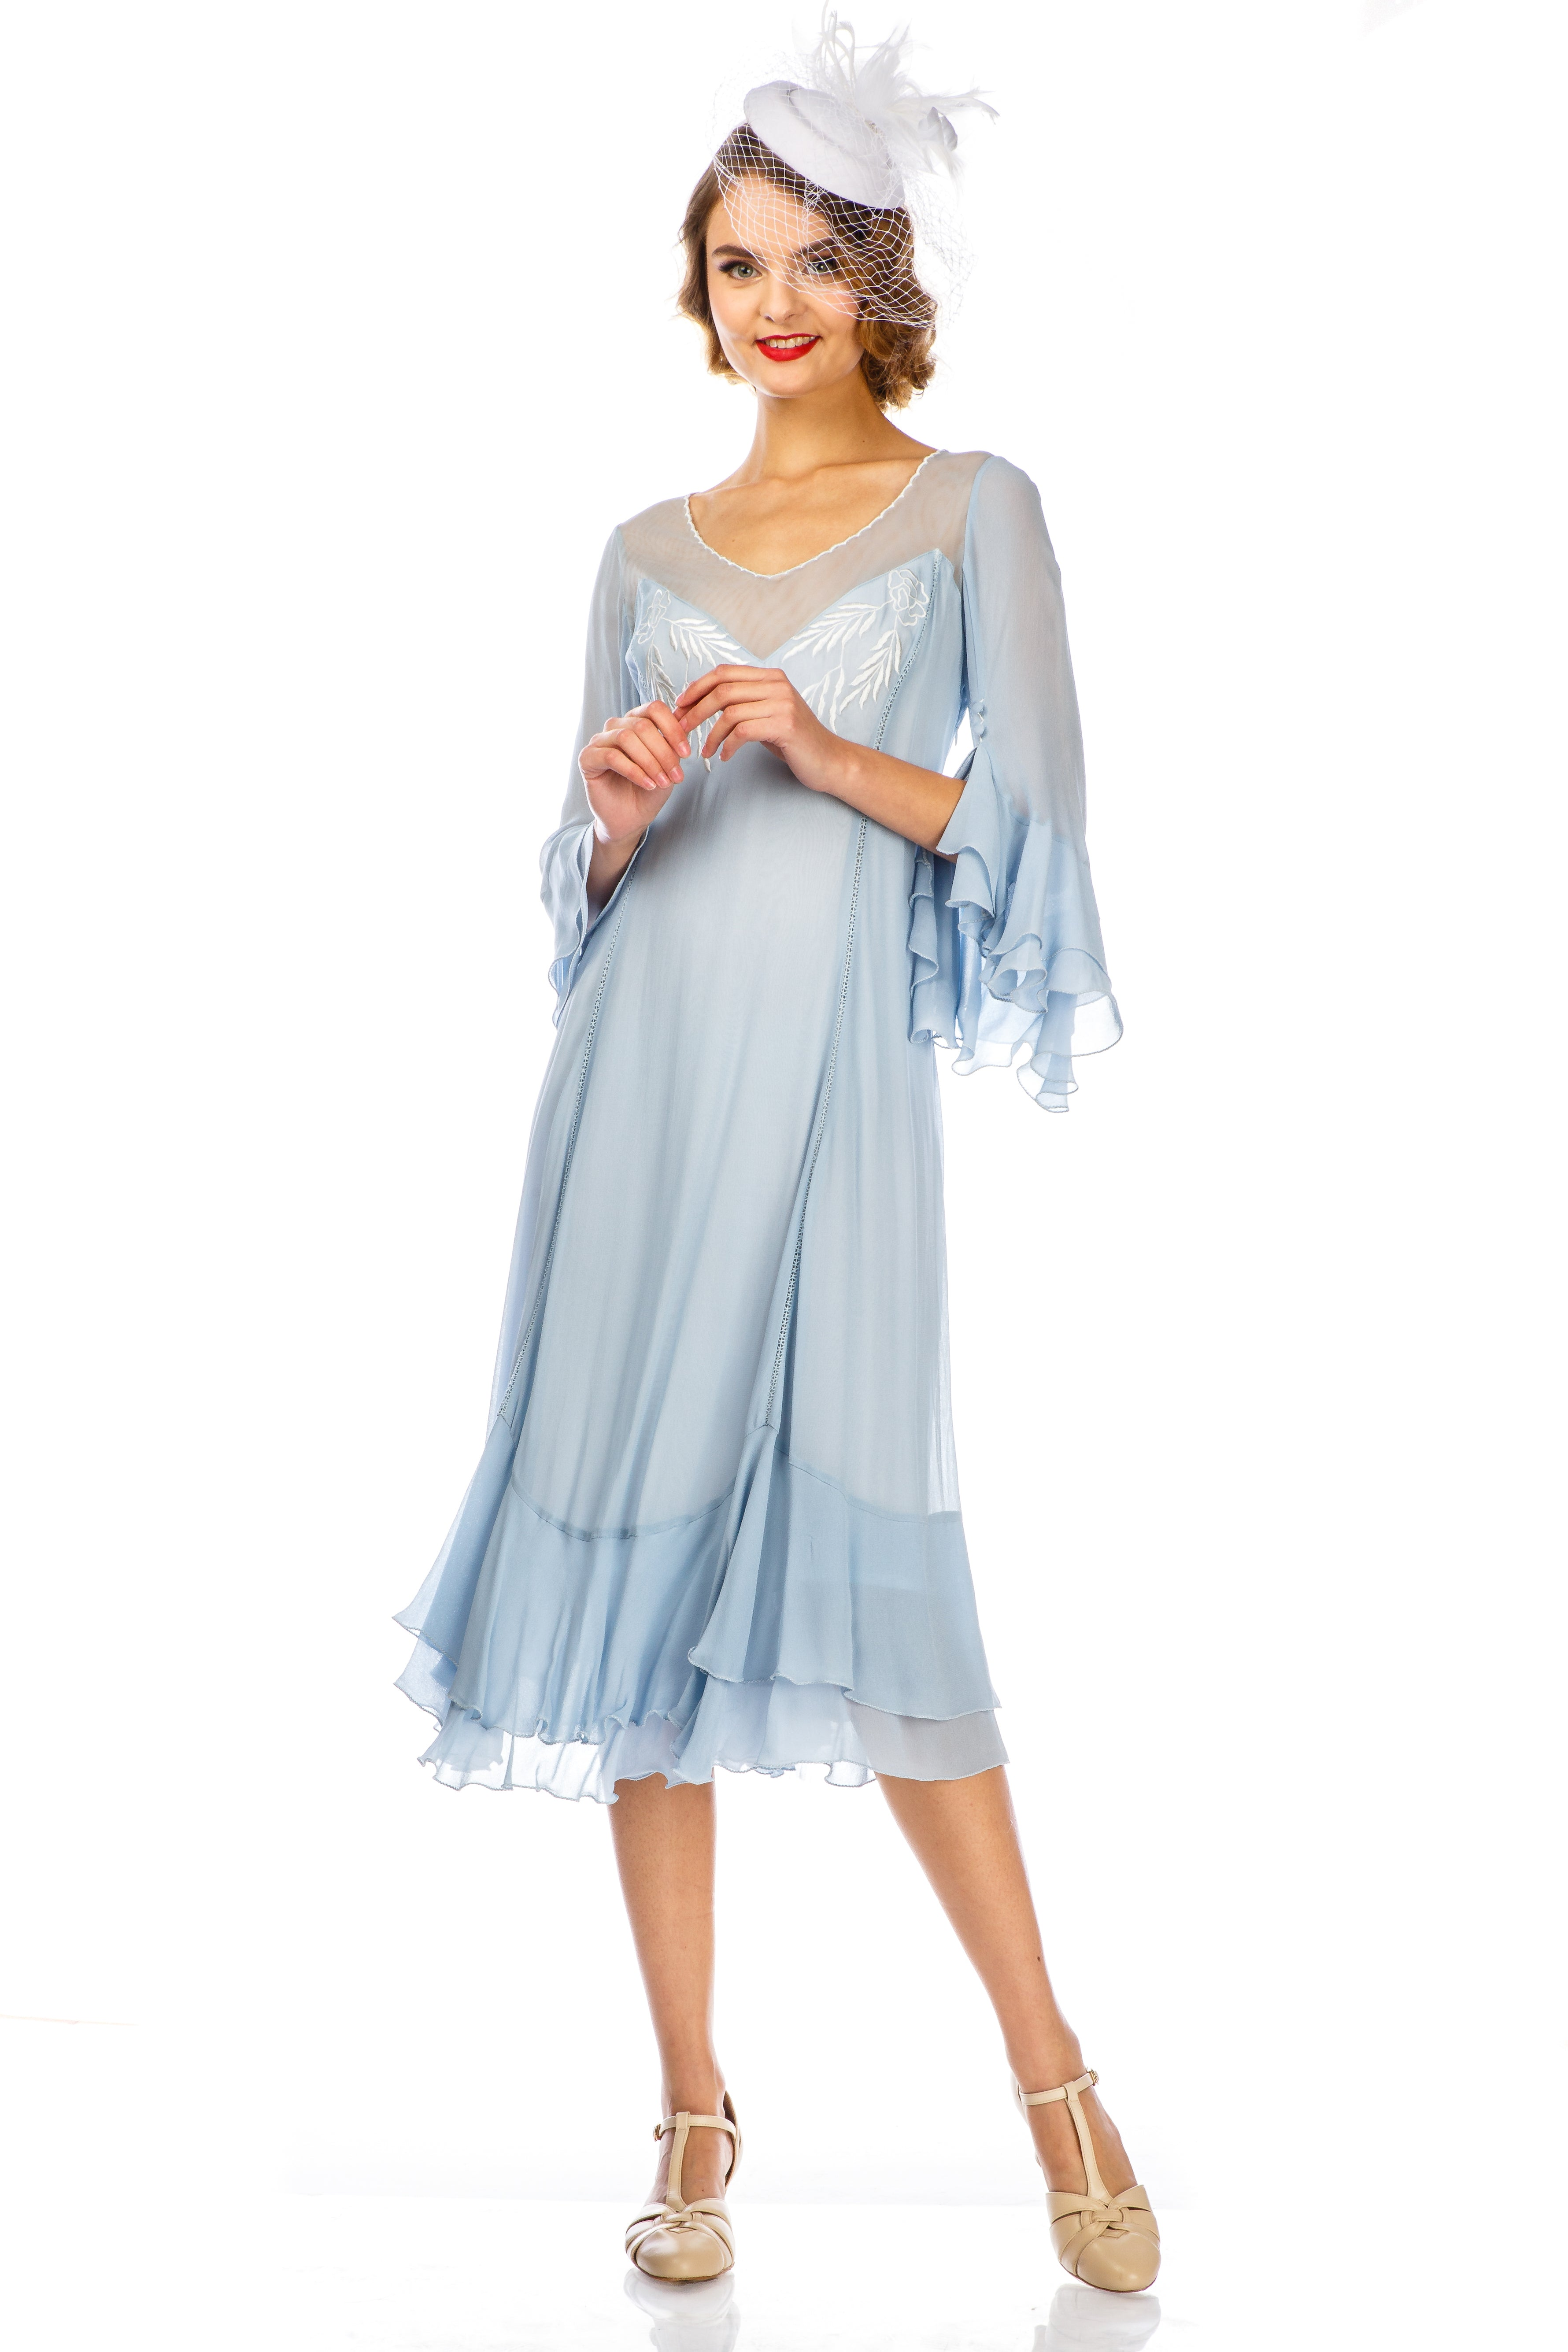 1920s Fashion & Clothing | Roaring 20s Attire Vintage Inspired Sky Blue Dress by Nataya $206.00 AT vintagedancer.com